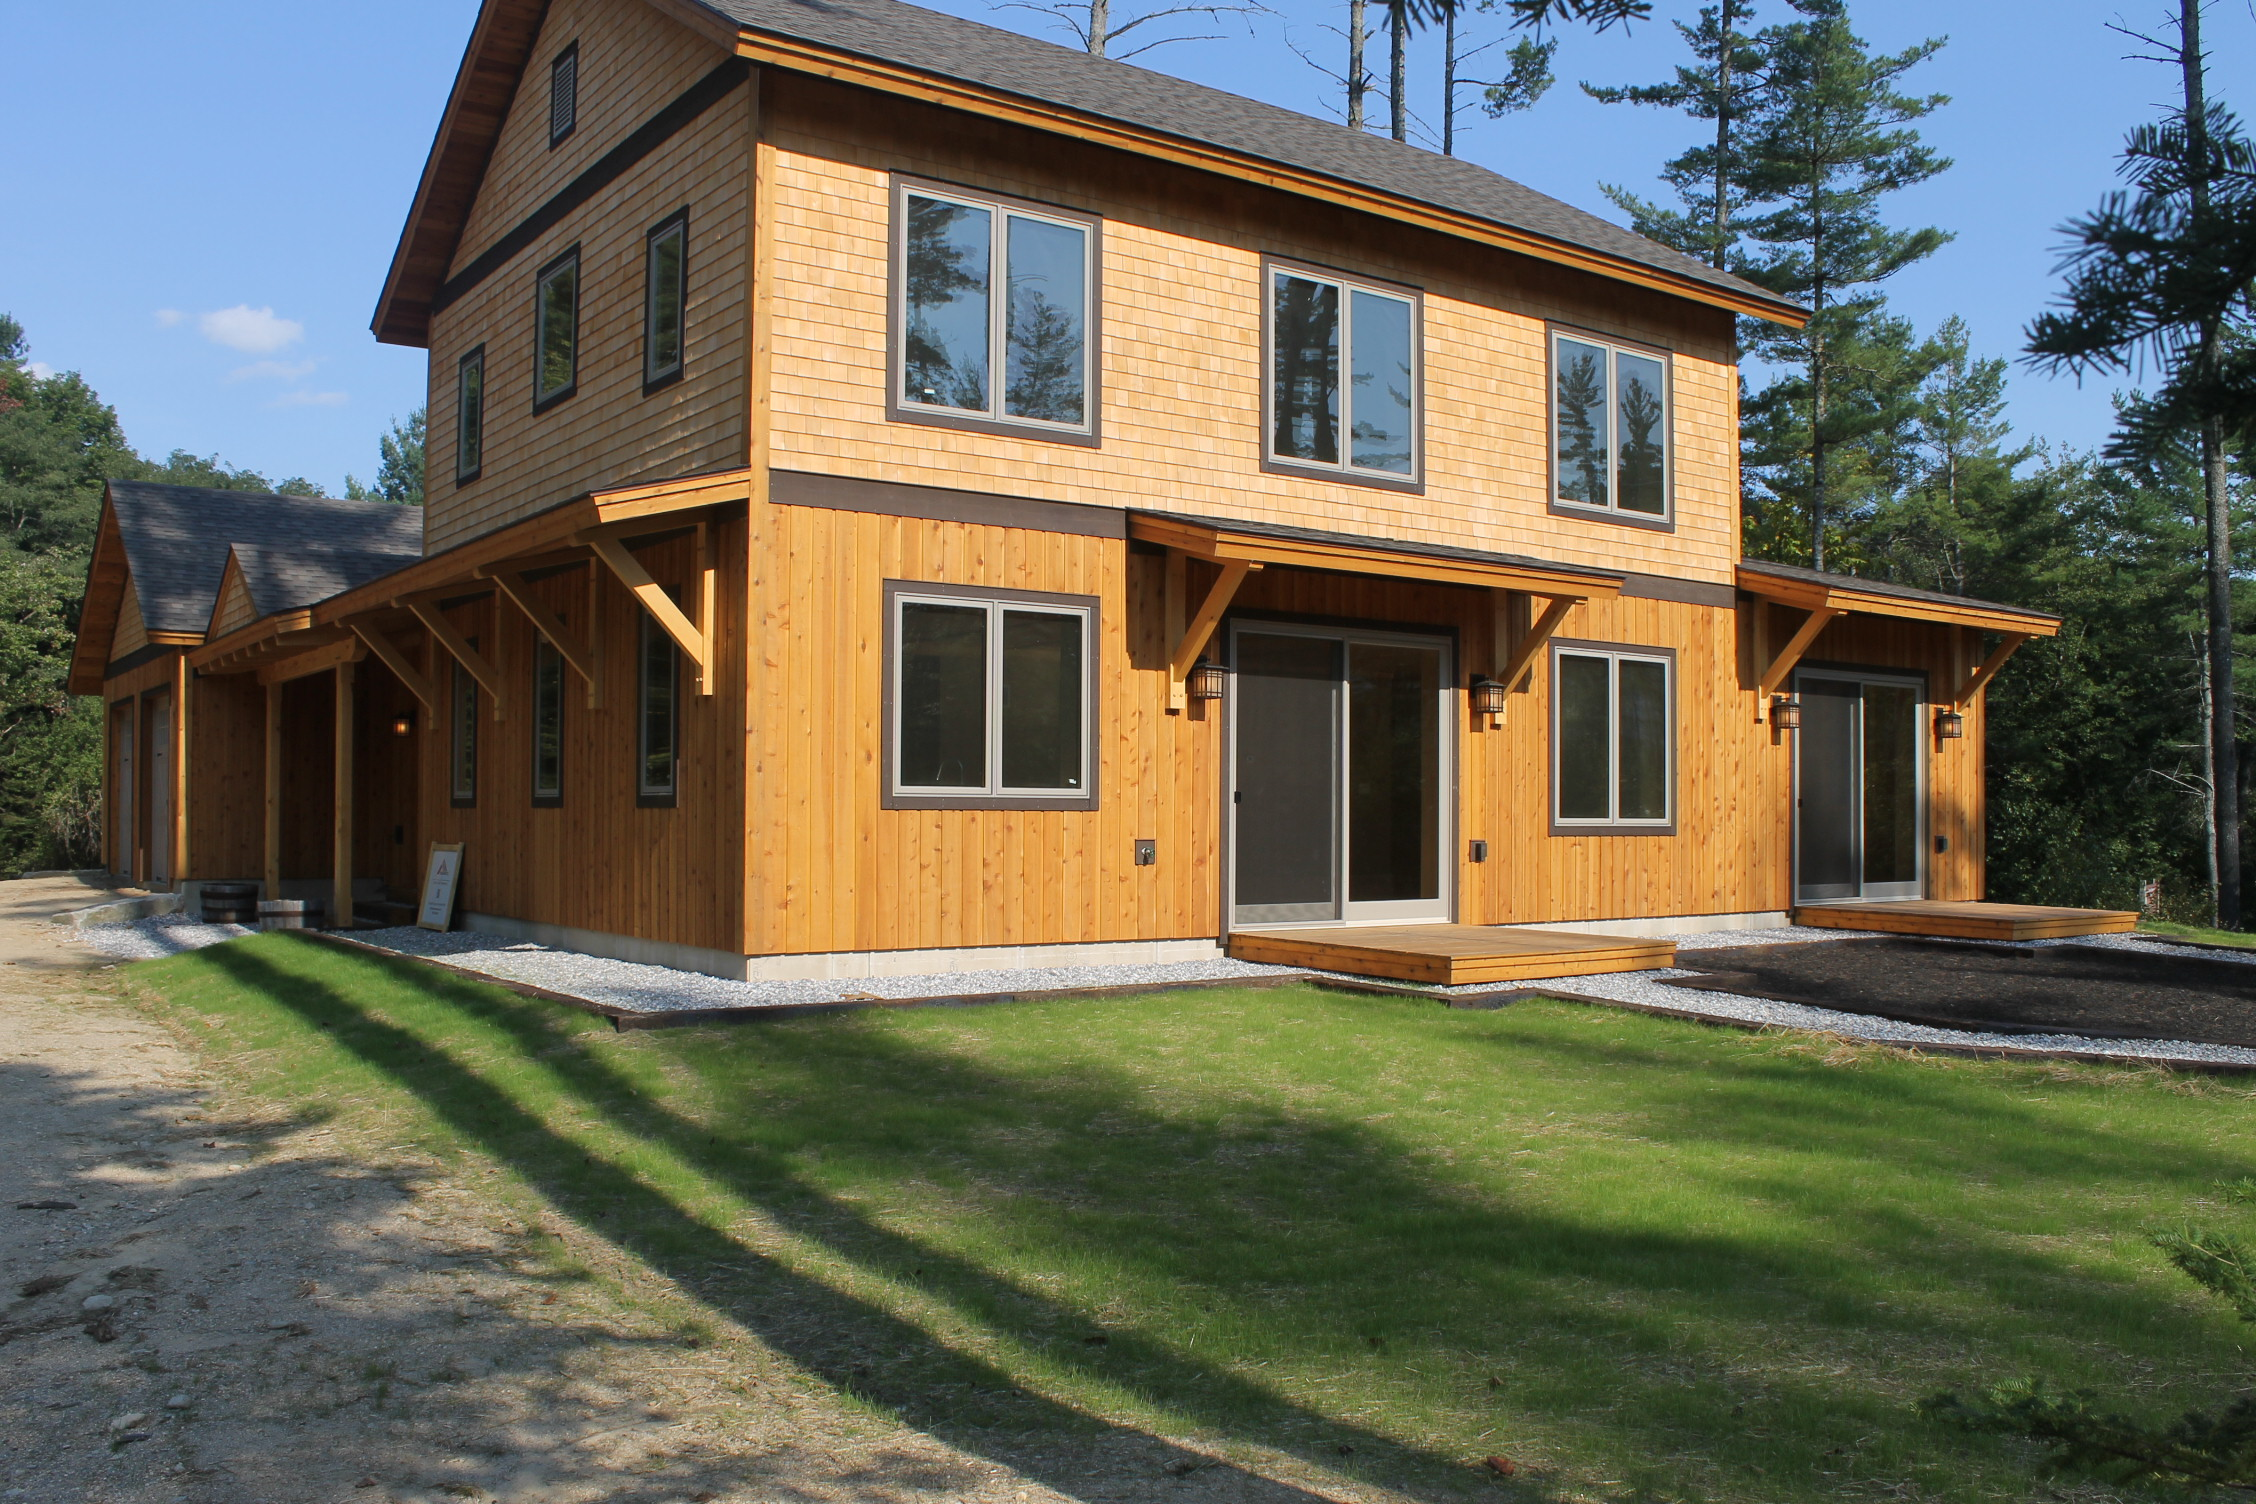 Douglas ridge brunswick maine green building package for Maine home building packages